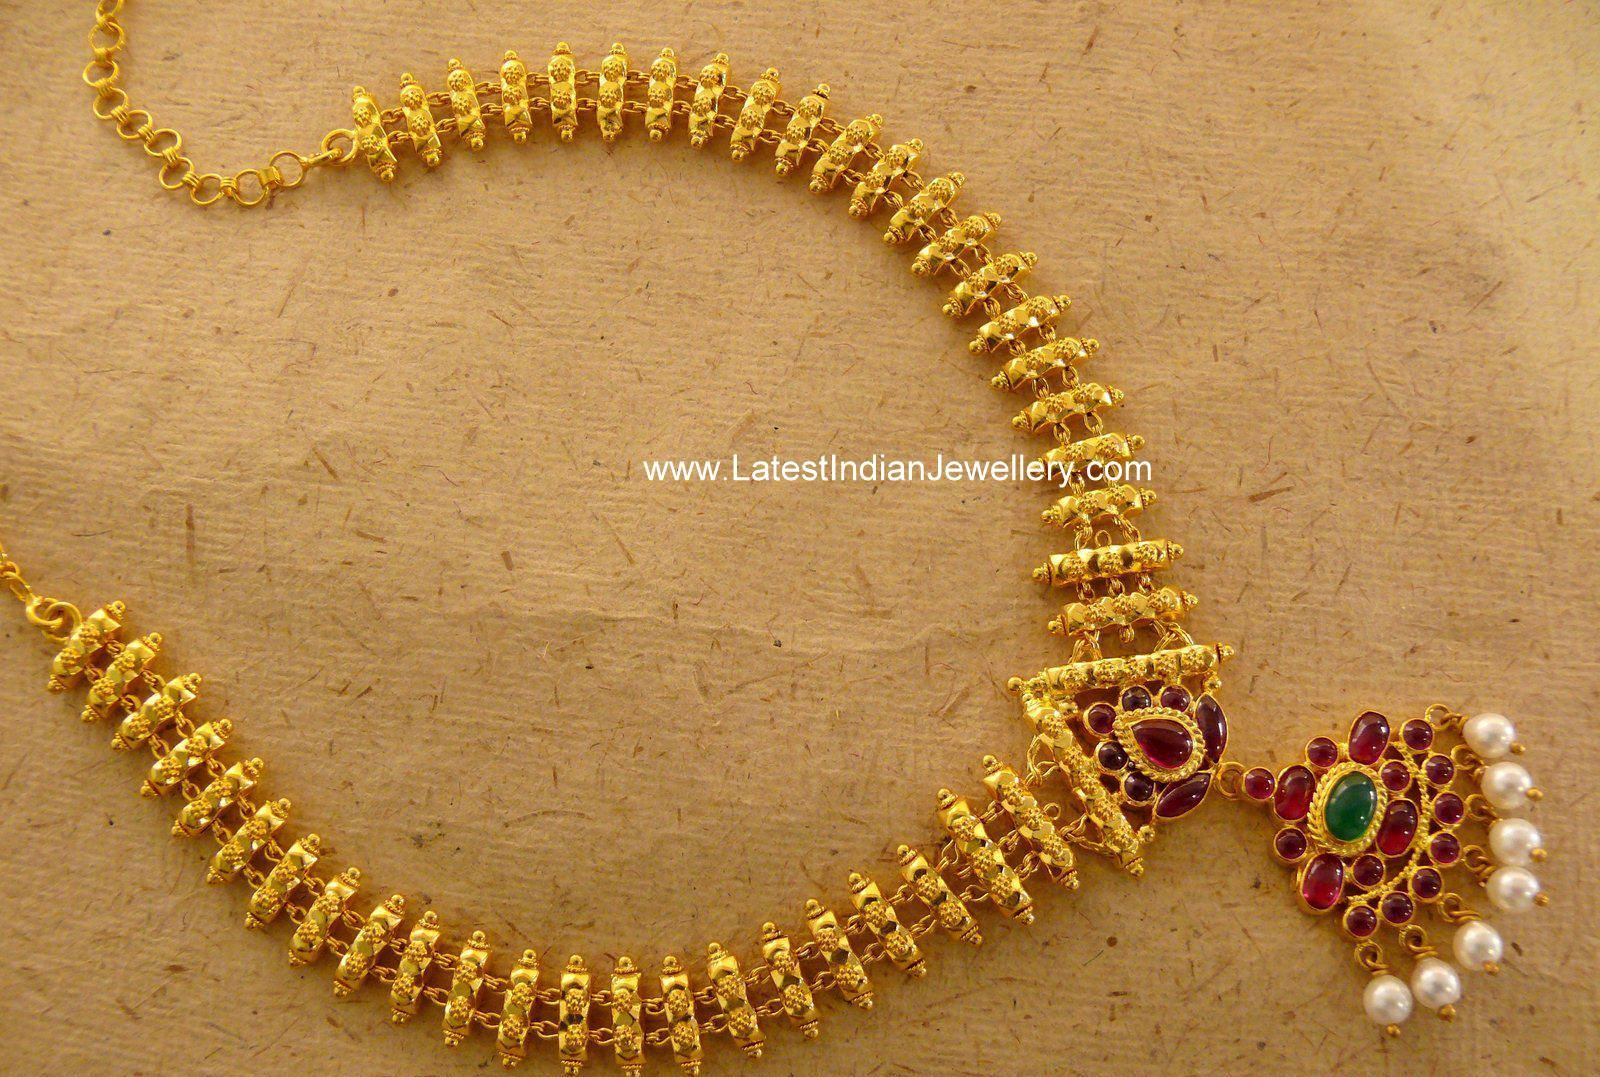 Lovely Hand Crafted Gold Necklace with Burma rubies Indian jewelry